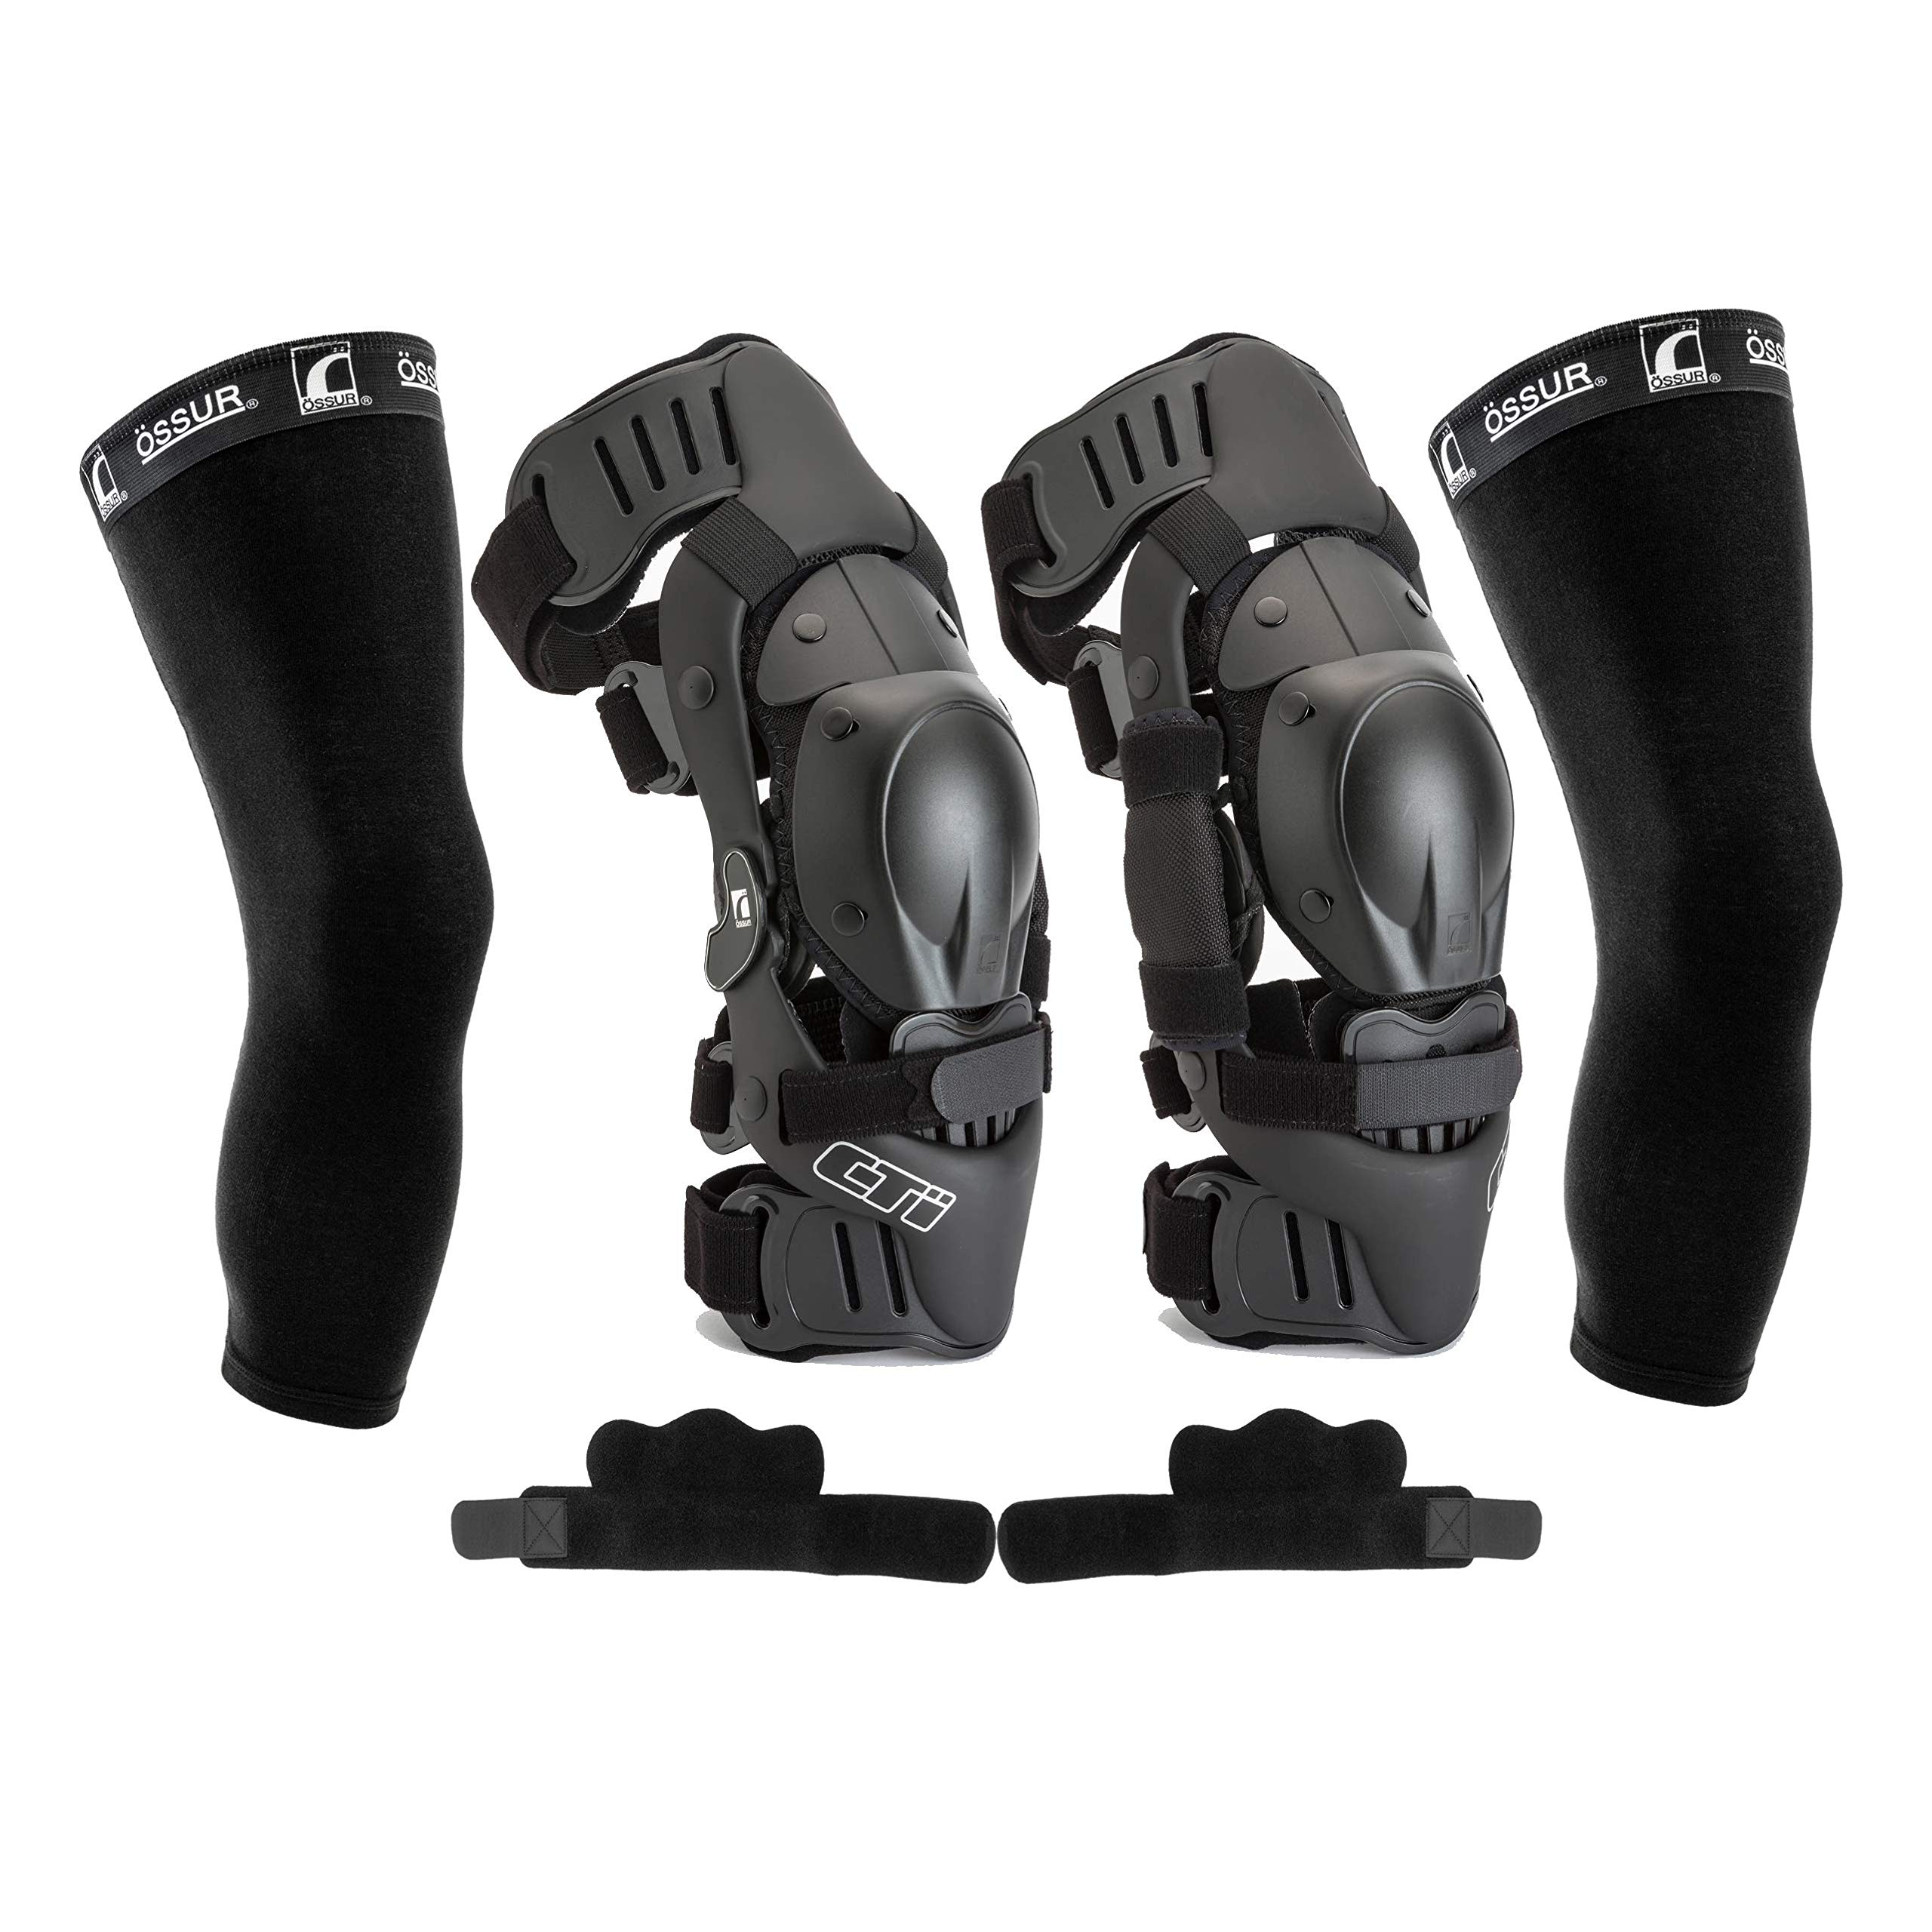 CTi Knee Brace Protection Set - Includes Right and Left Sides, Patella Protectors, Gear Guards, Anti-Migration Wraps, Under-Sleeves – for Motocross, Snowboarding, Skiing, Skating, Wakeboard (Small)